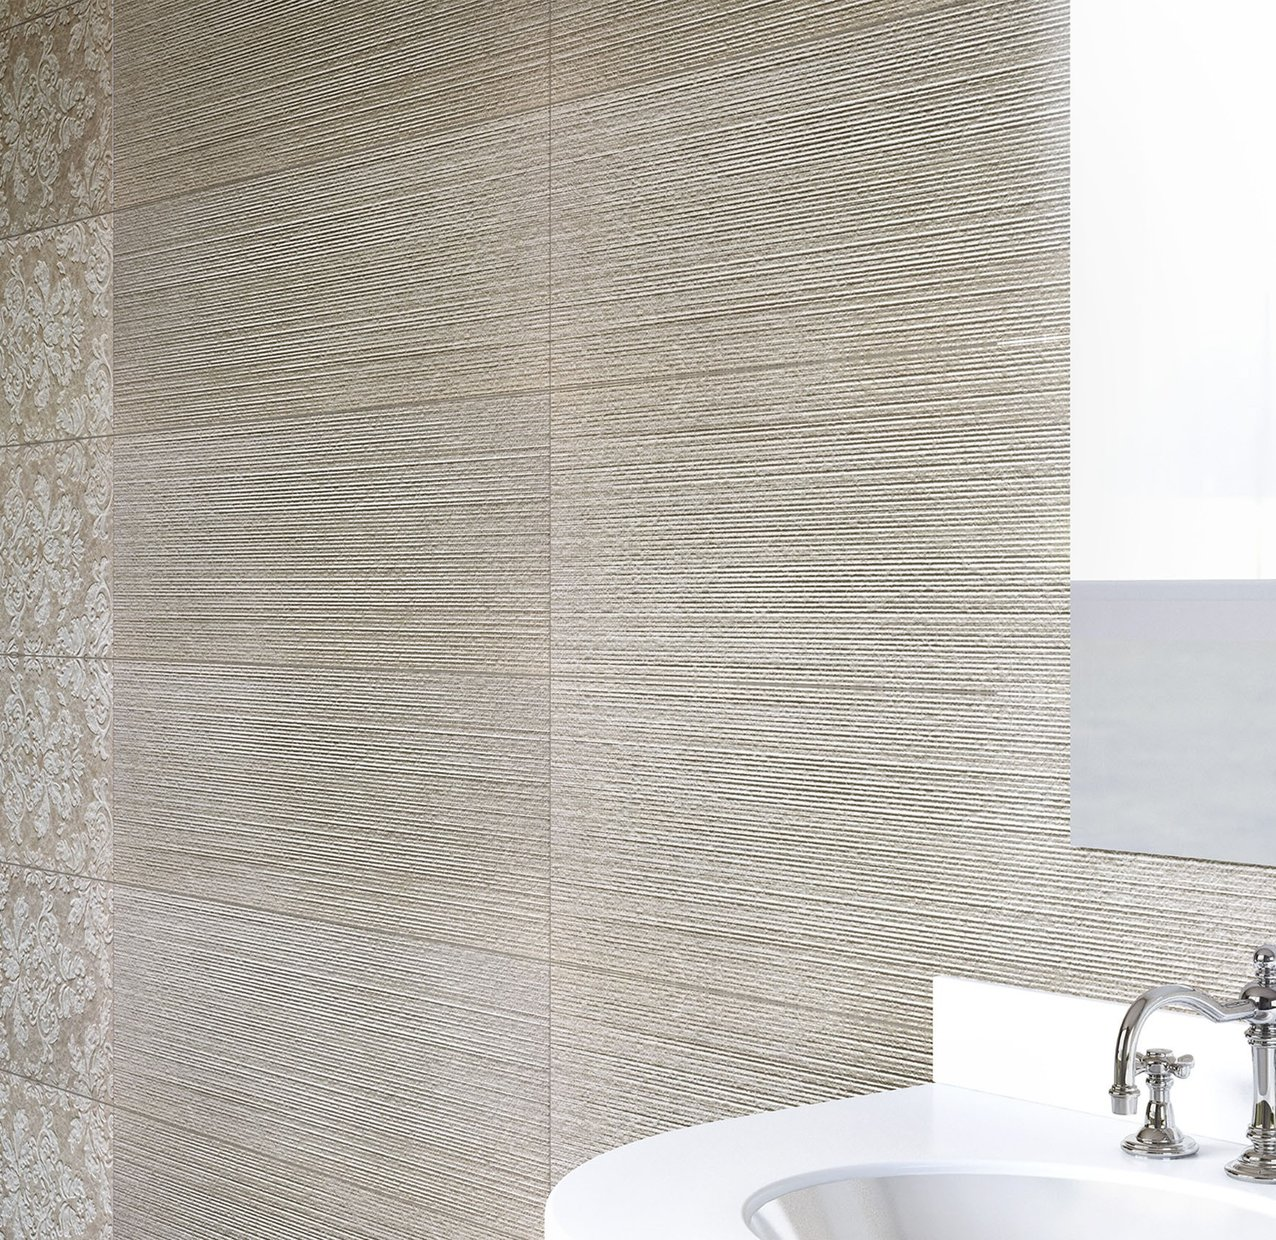 Linz Beige and Mix tiles Modern style Bathroom